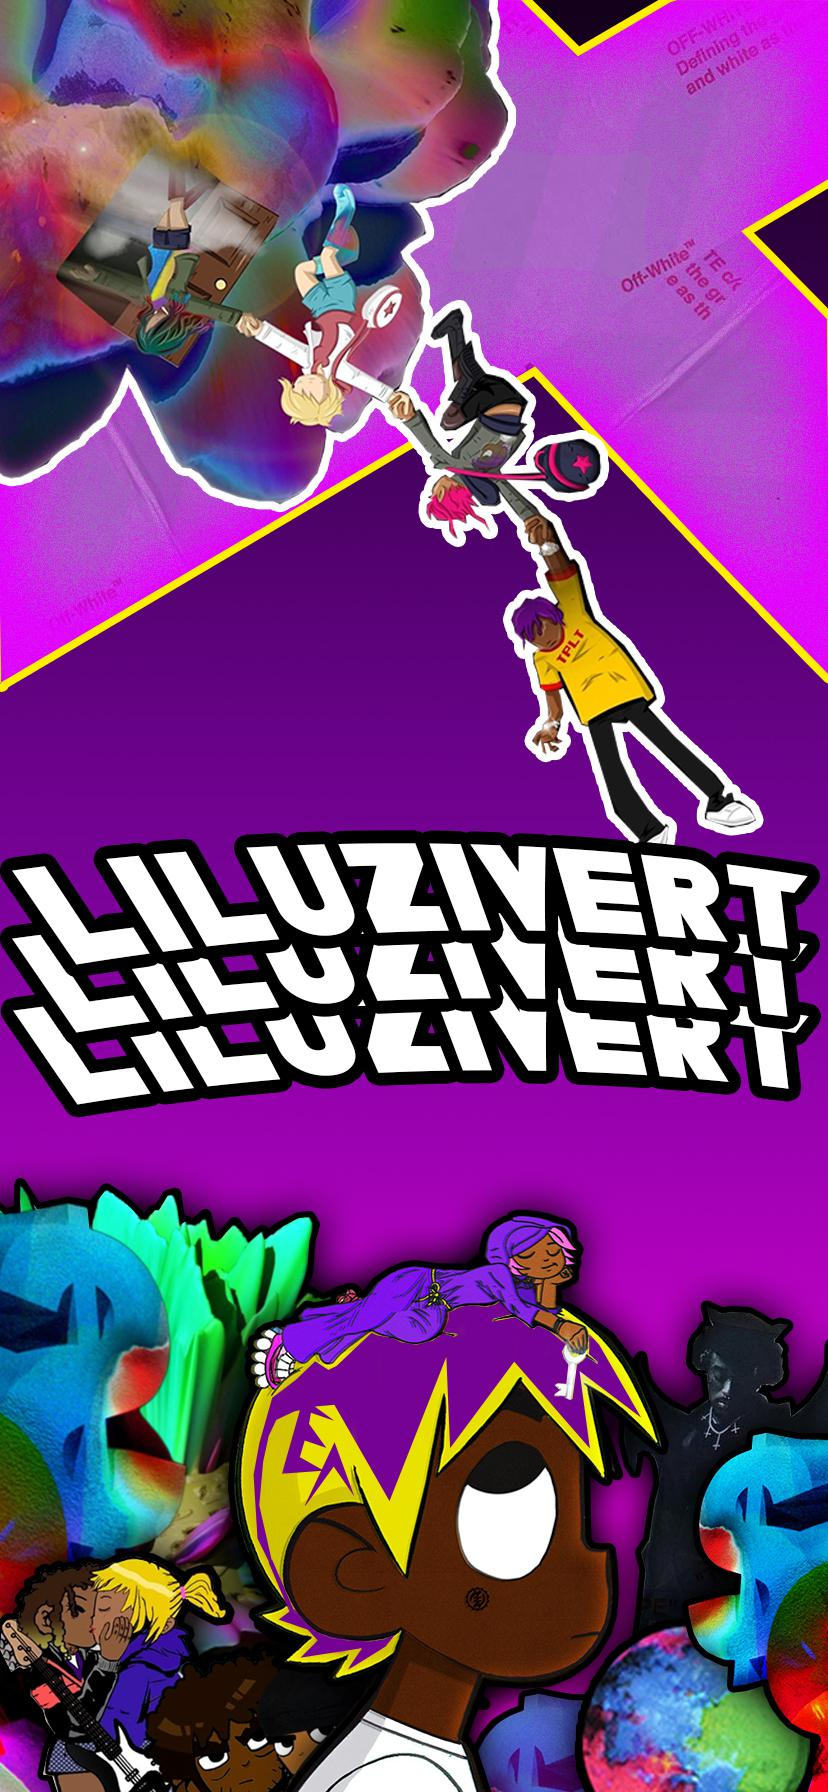 Lil Uzi Vert Iphone Wallpapers Wallpaper Cave Check out our lil uzi vert poster selection for the very best in unique or custom, handmade pieces from our wall décor shops. lil uzi vert iphone wallpapers